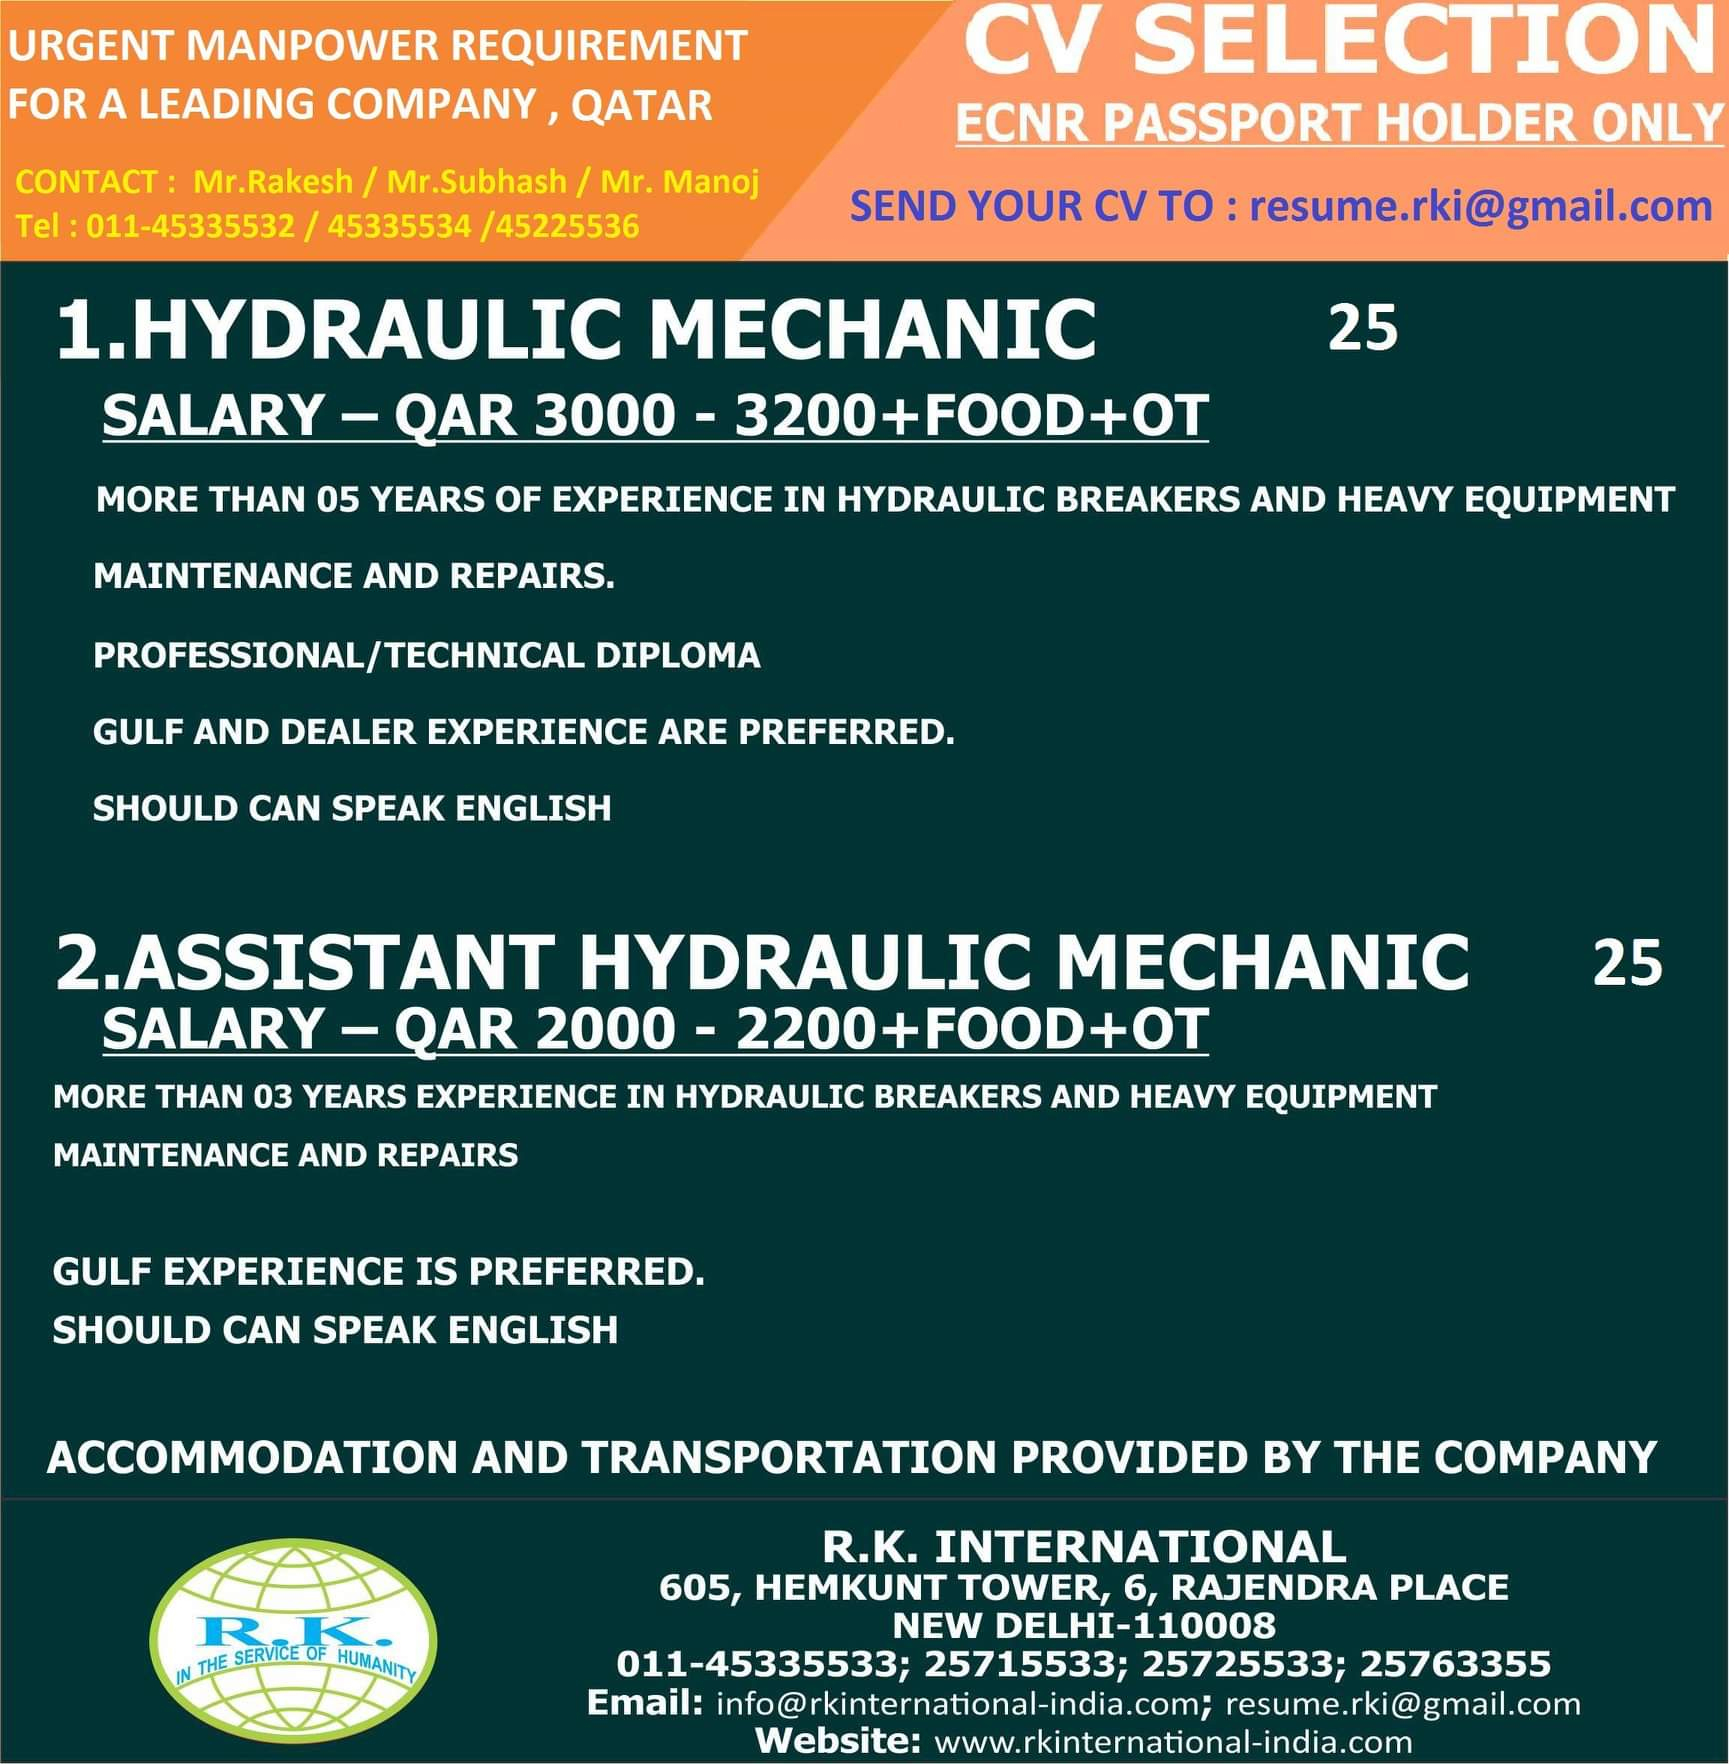 URGENT MANPOWER REQUIREMENT FOR A LEADING COMPANY, QATAR